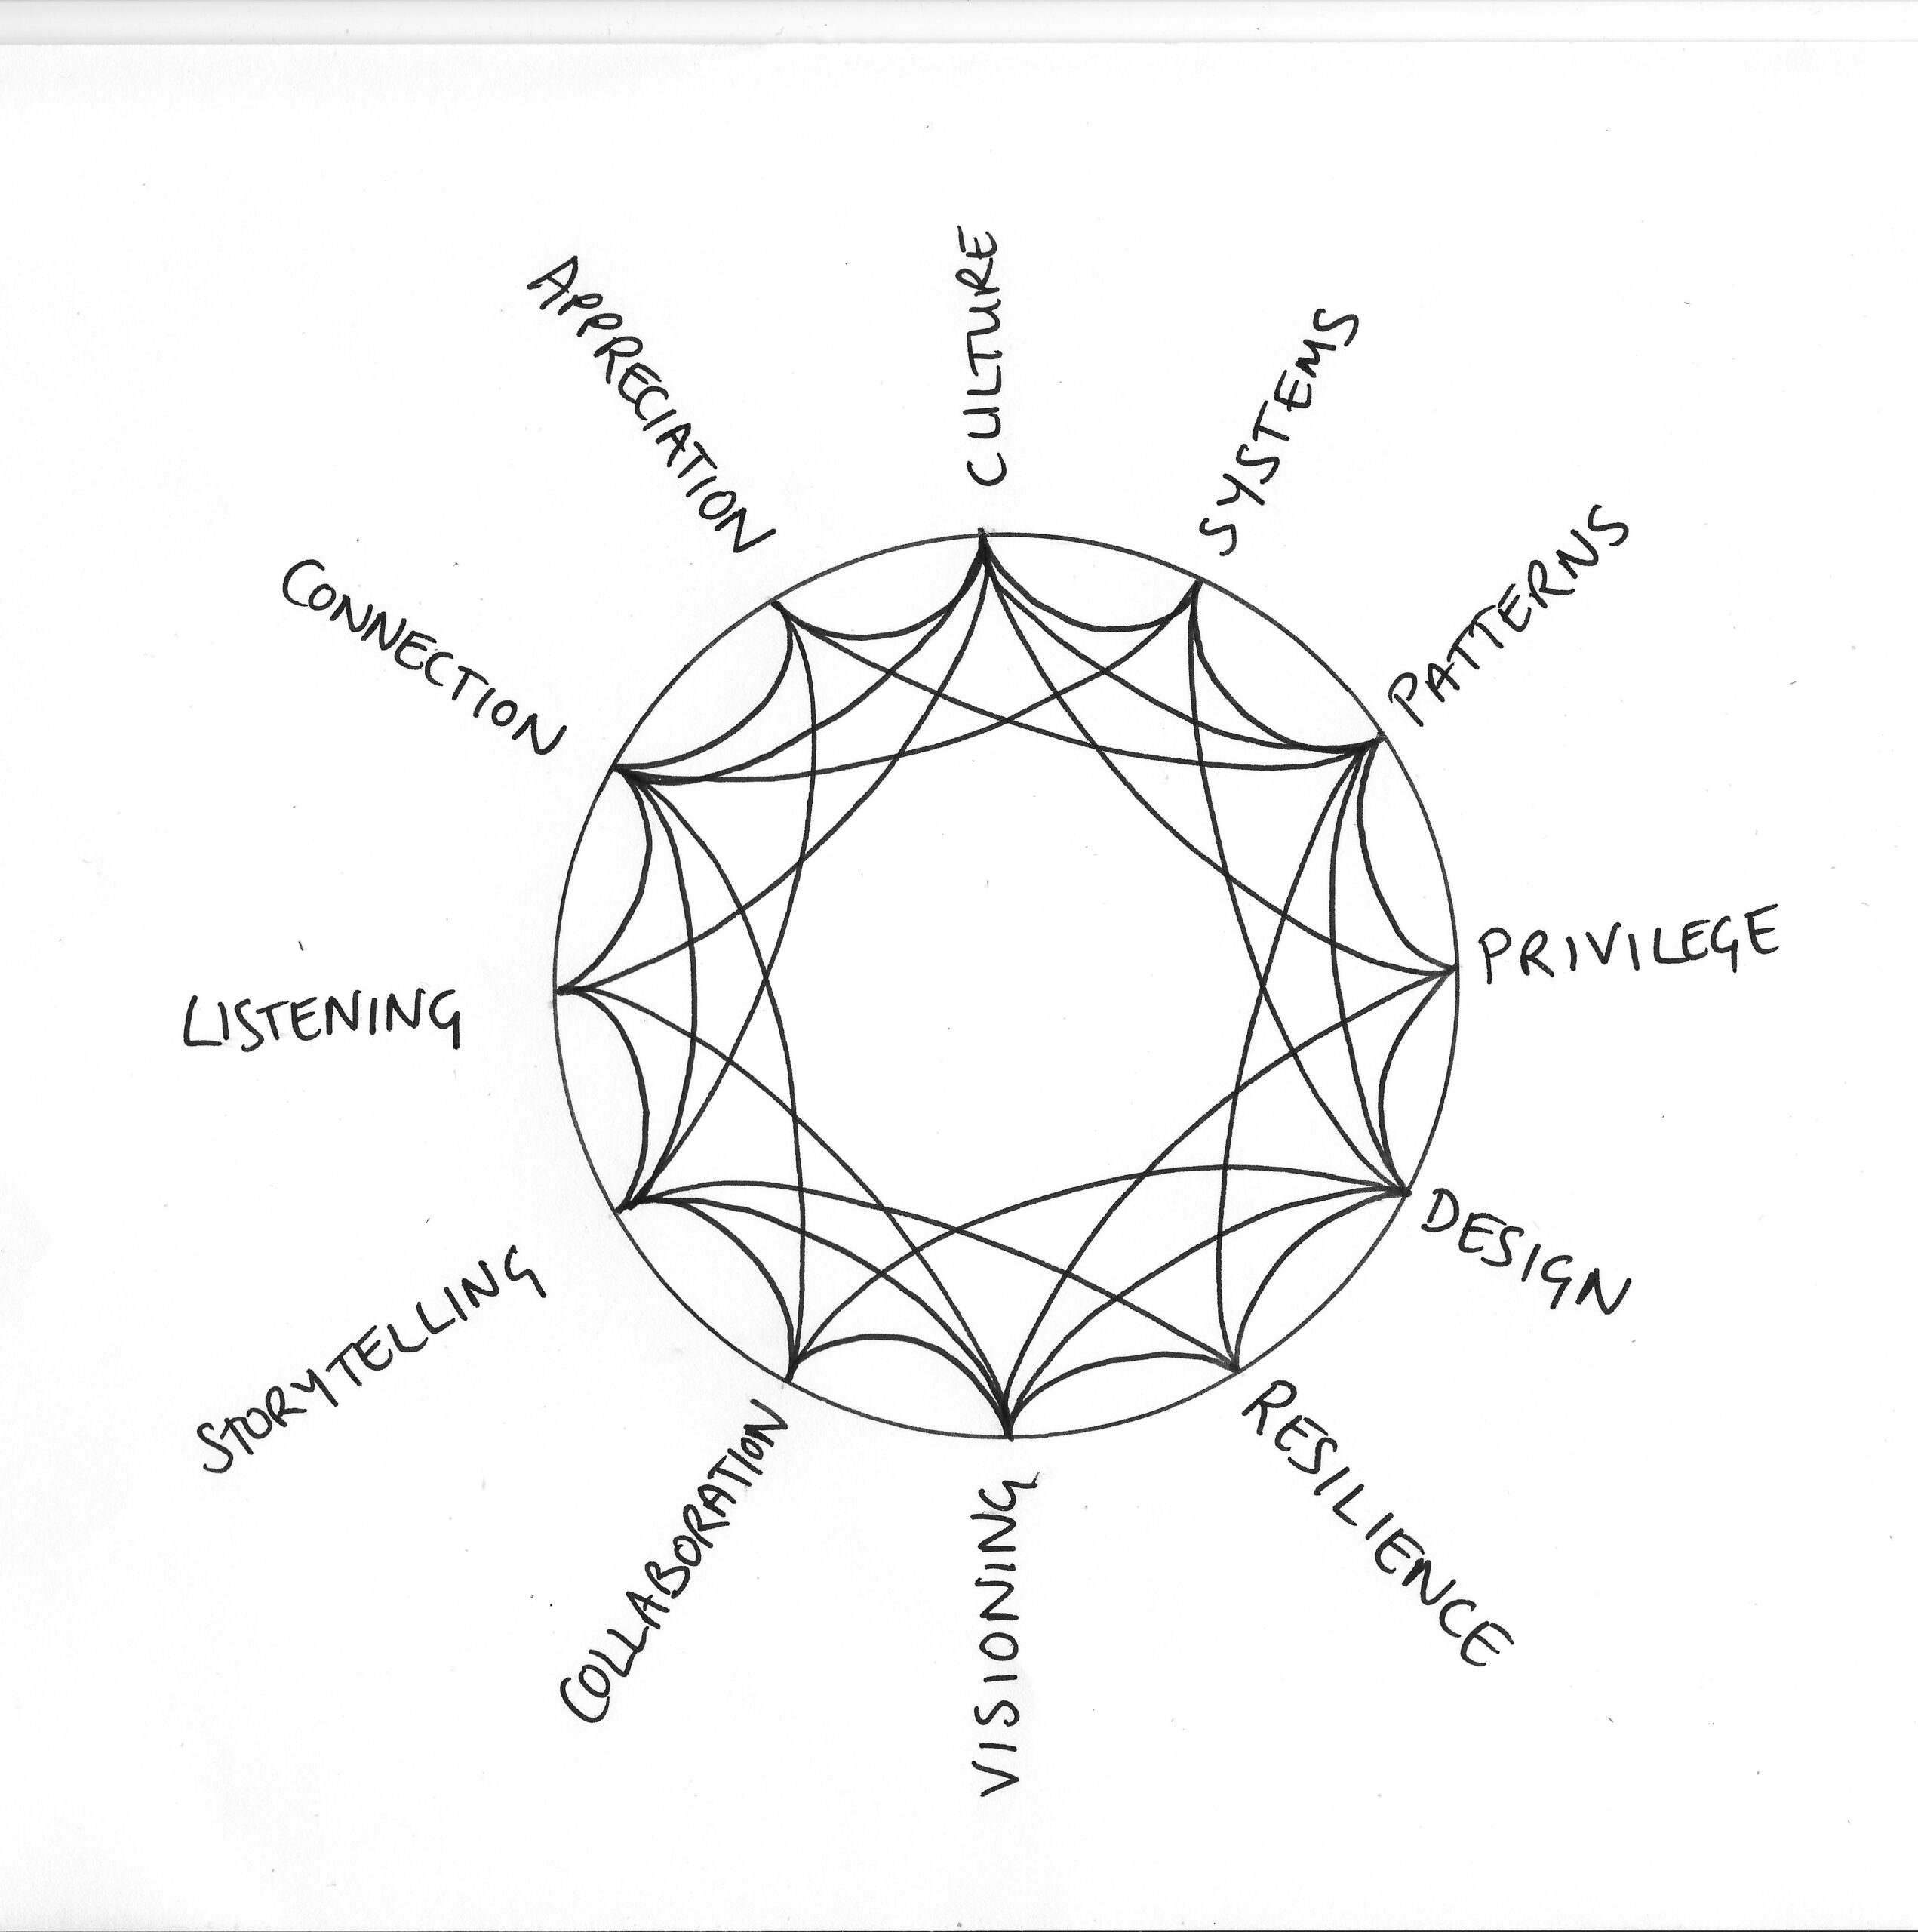 web of connections mandala